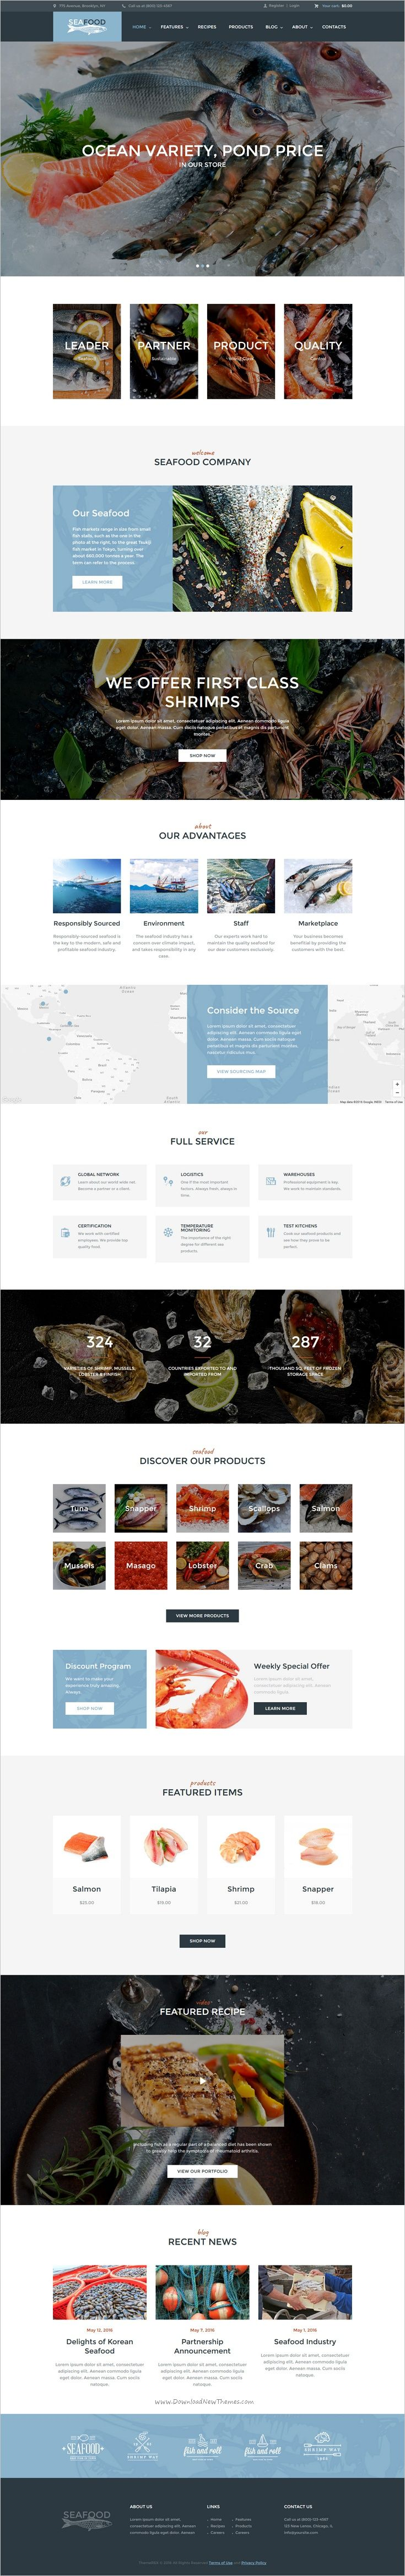 Seafood is a clean and modern design responsive #WordPress #template for #seafood company and #cafe websites with 4 unique homepage layouts download now➩  https://themeforest.net/item/seafood-company-restaurant-theme/18013136?ref=Datasata